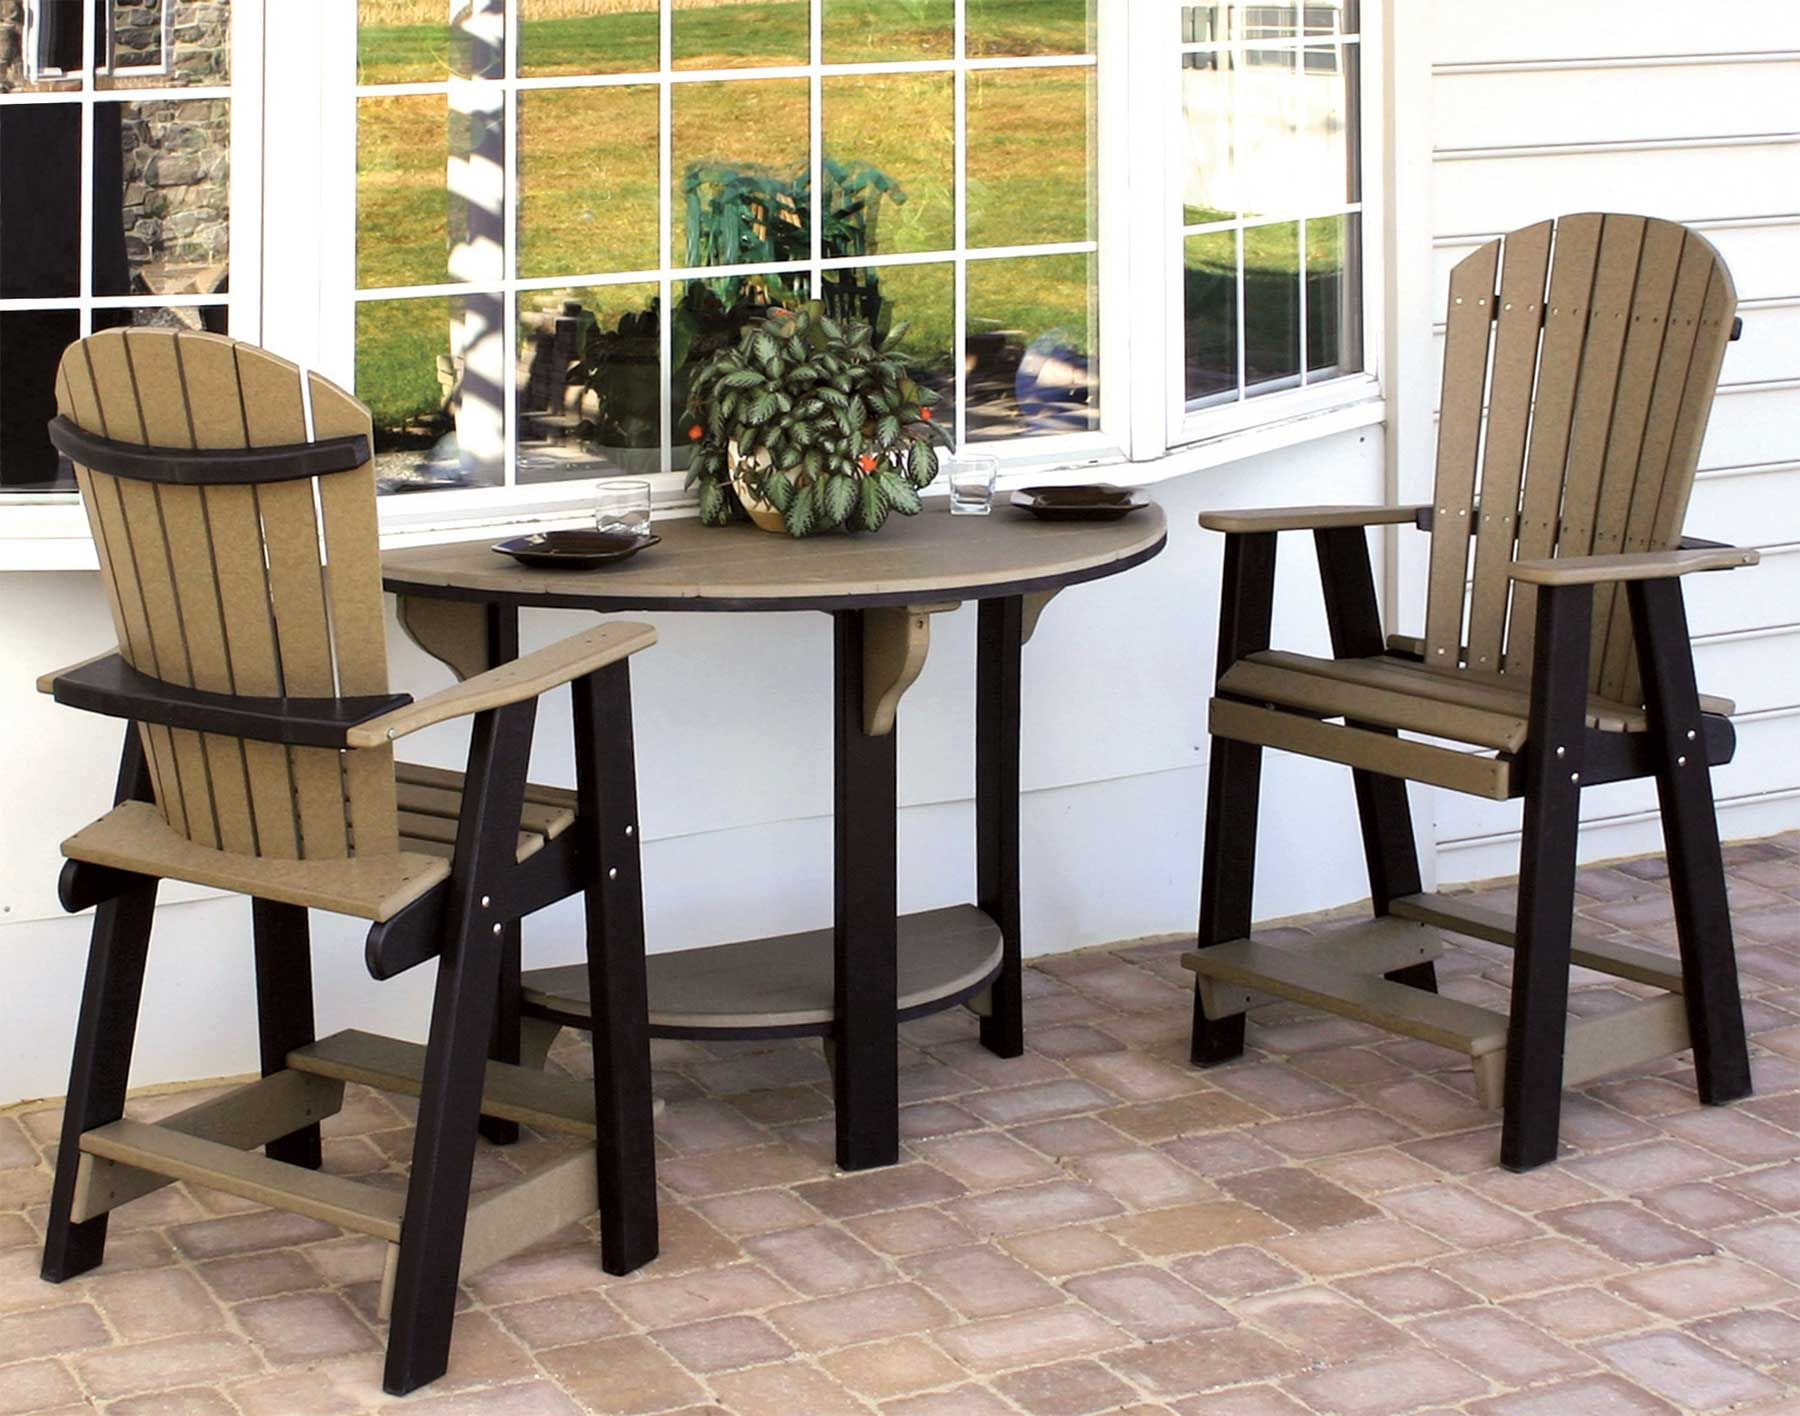 Cute patio seta half round table with 2 balcony chairsDining